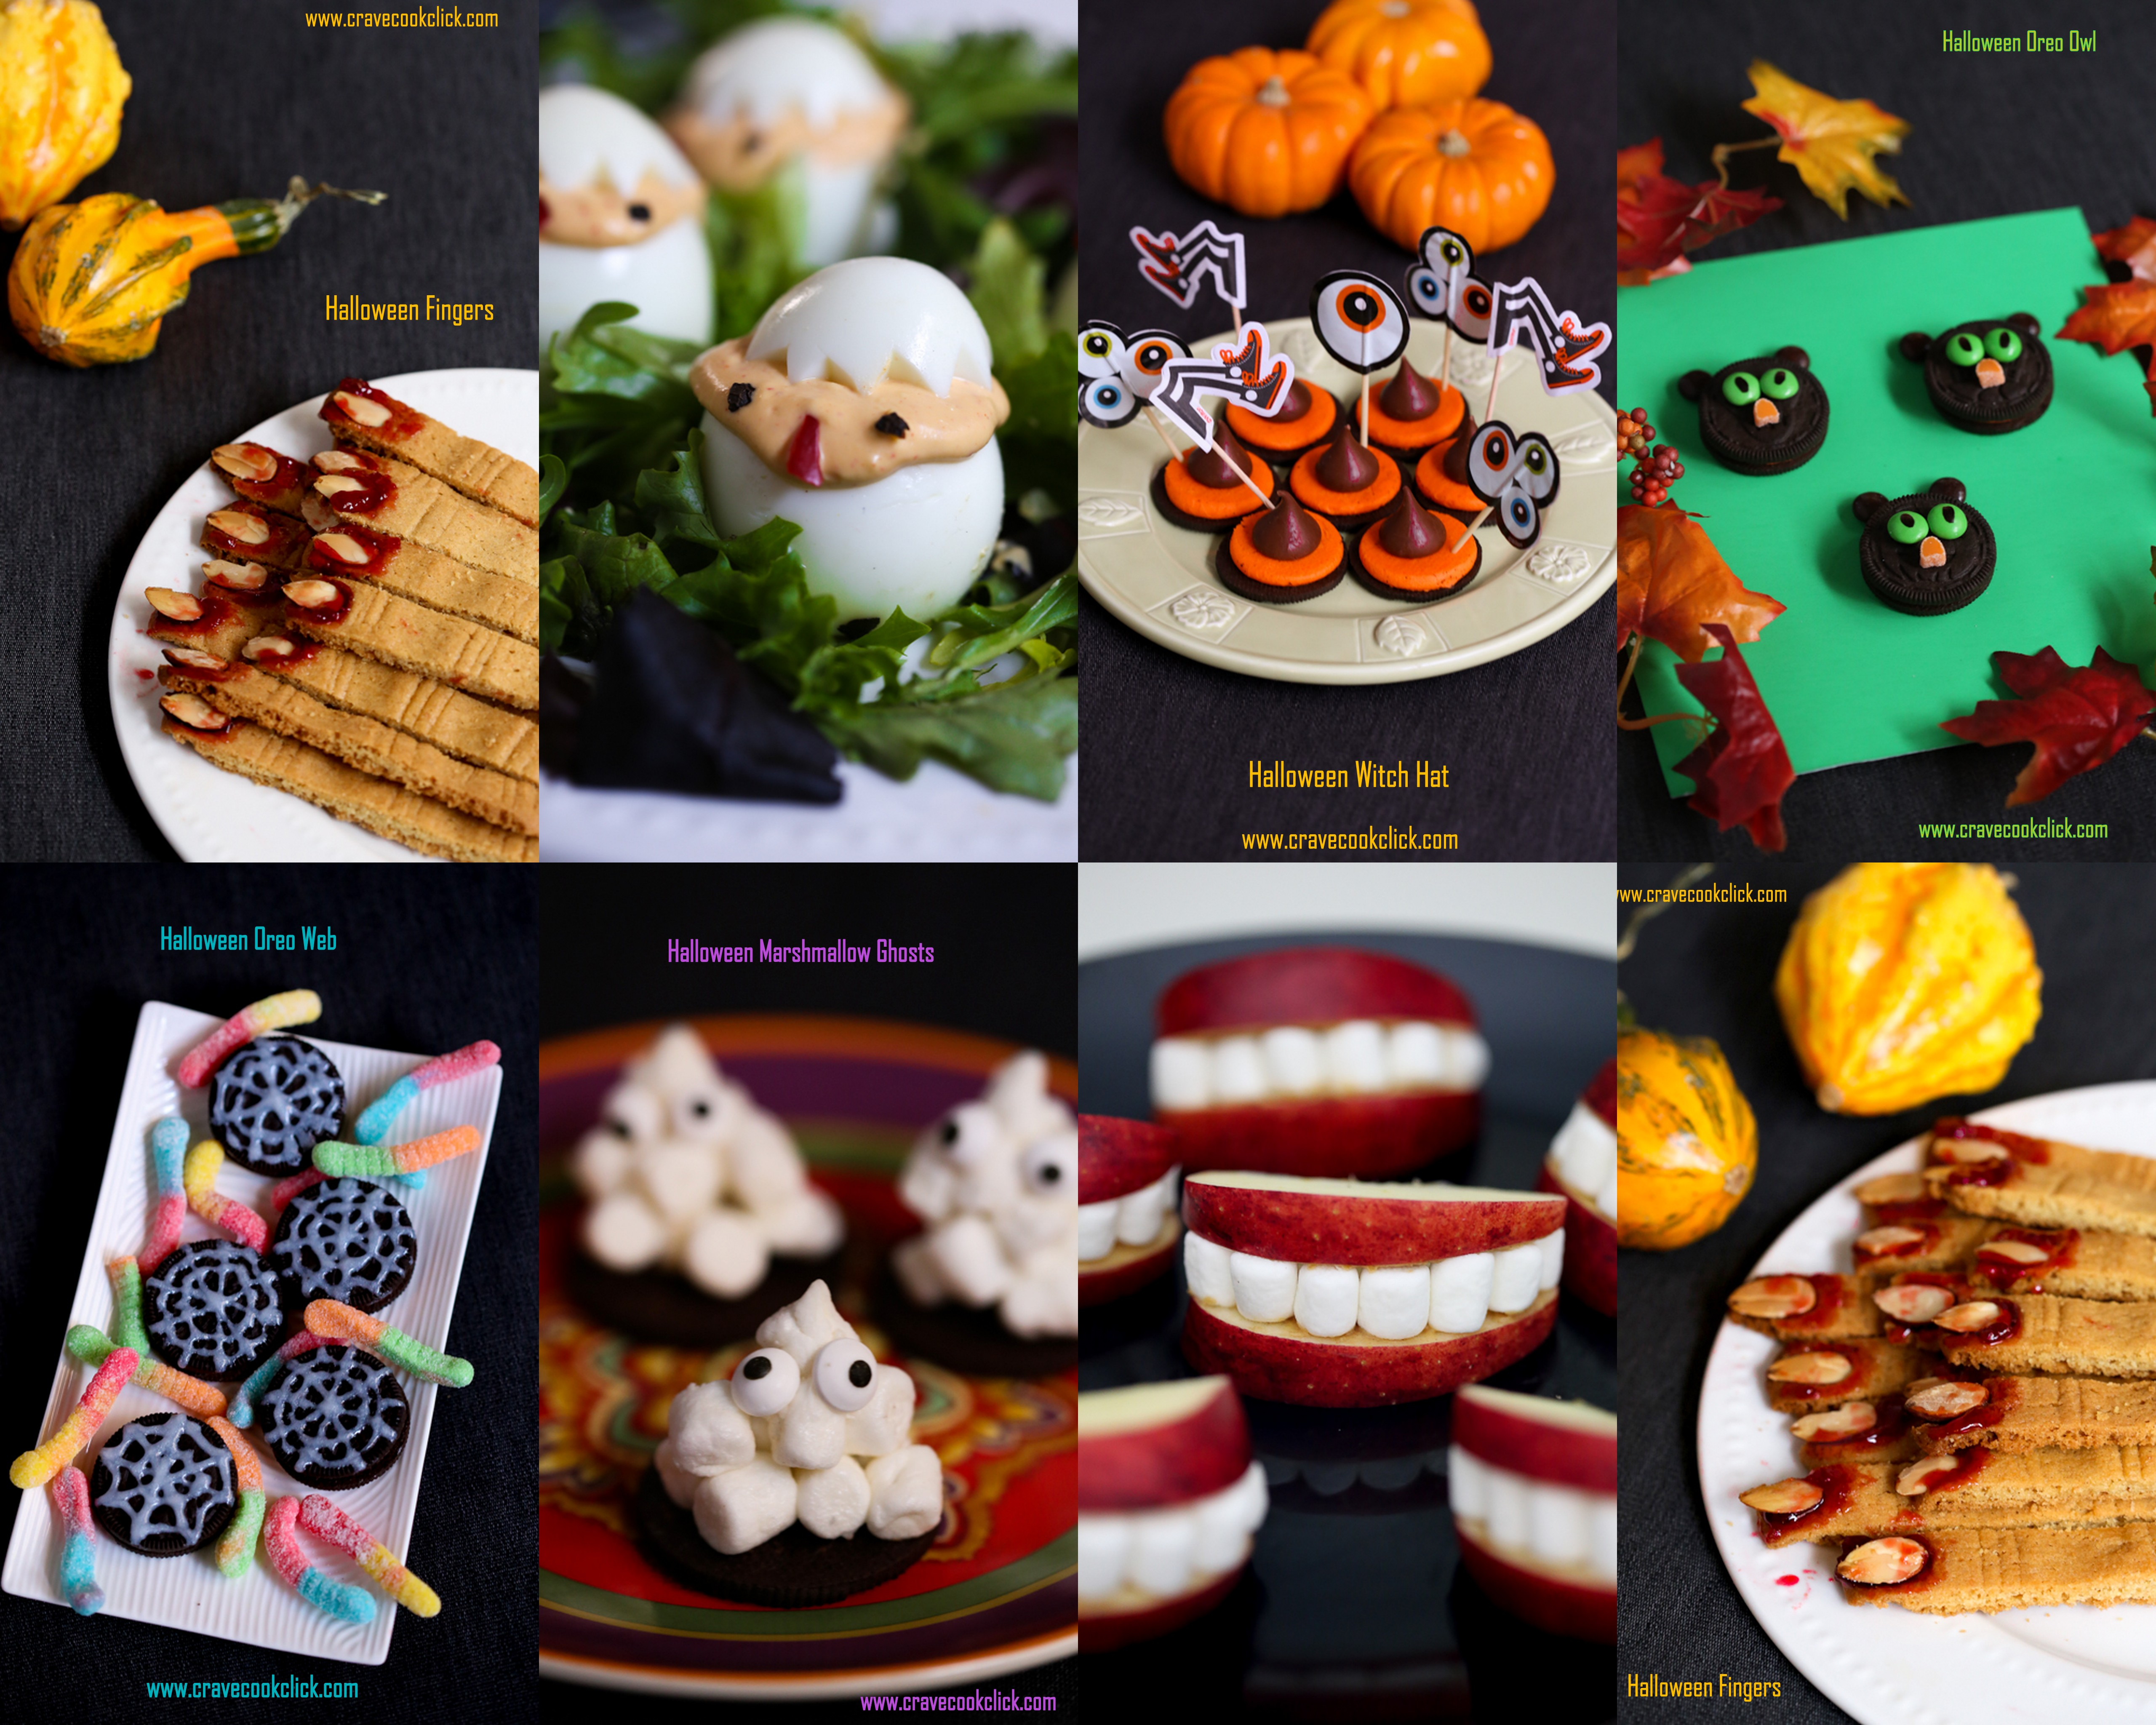 z 12 Halloween Treats